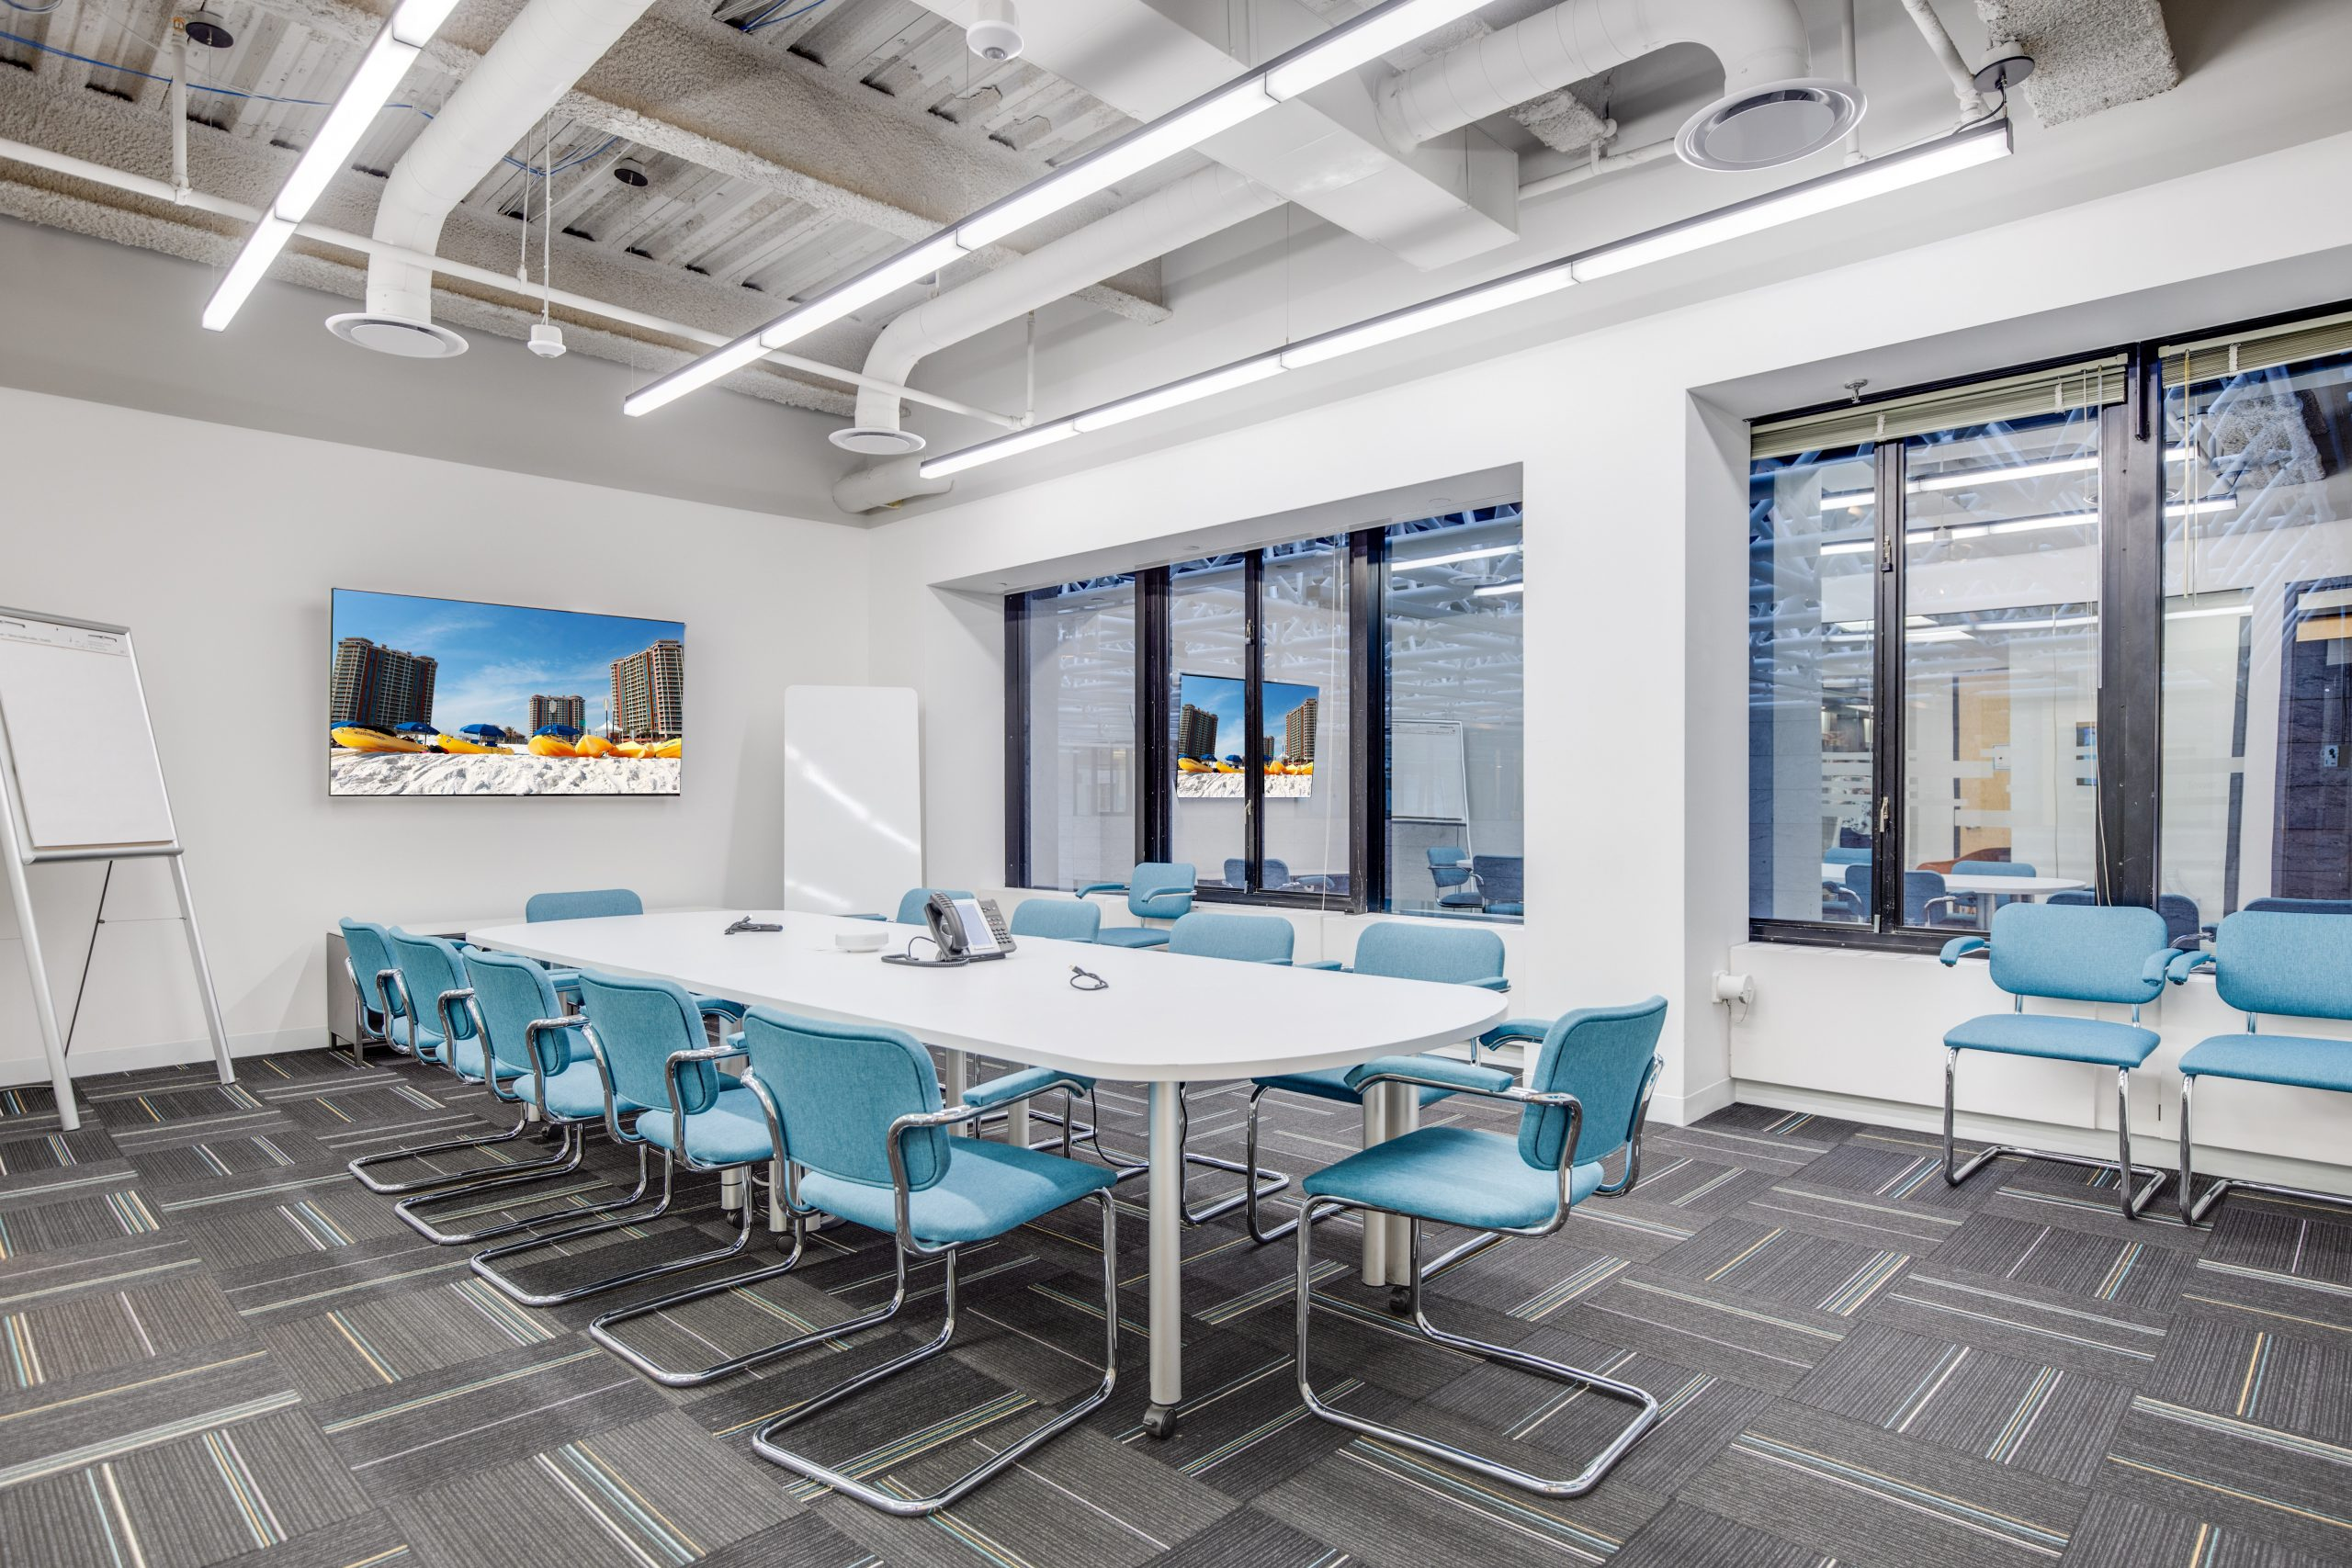 Meeting room space at 53 State Street